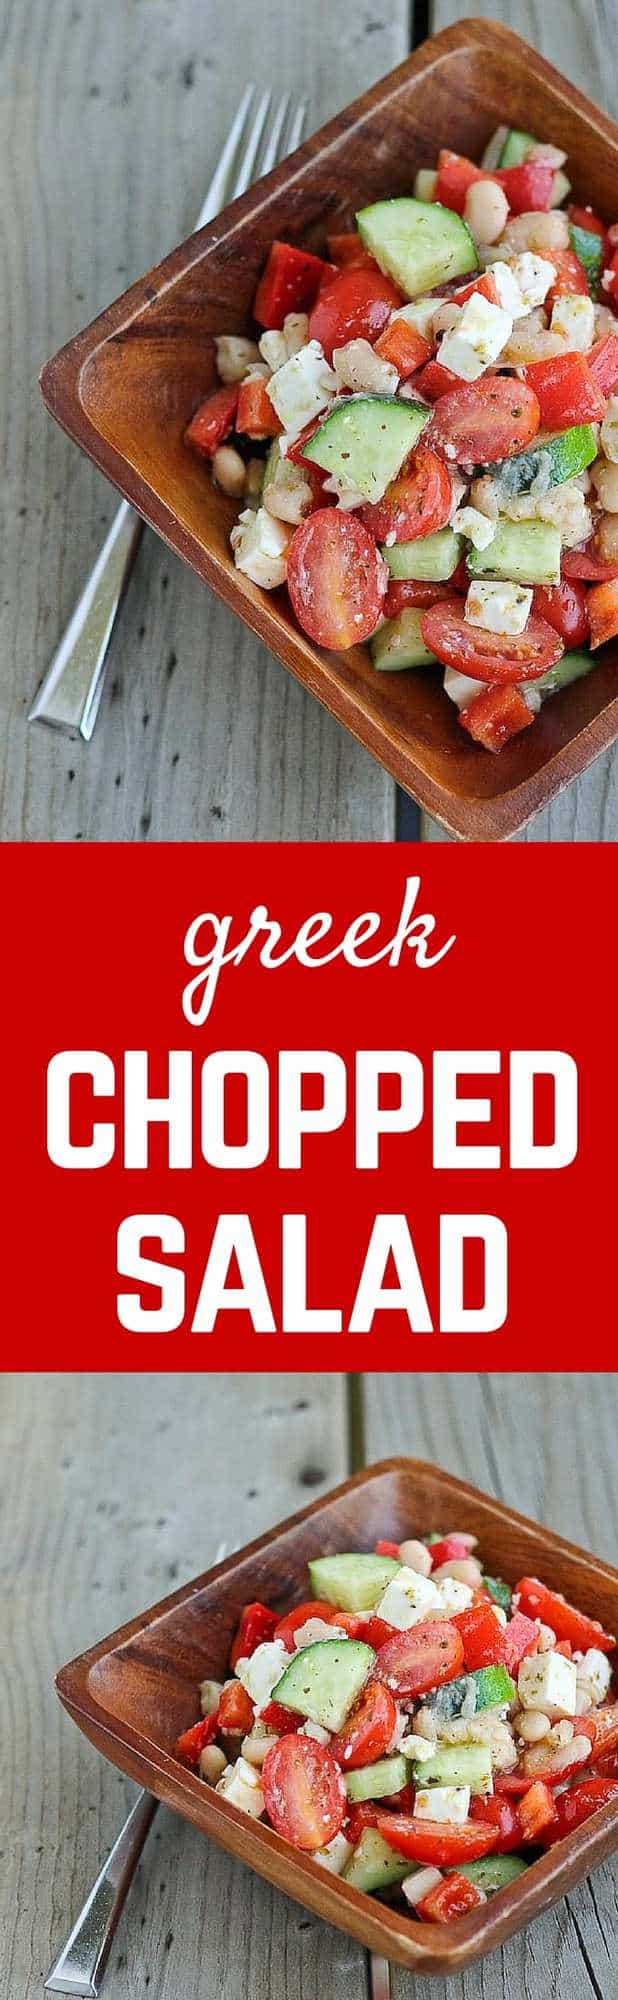 This Greek chopped salad recipe is ridiculously easy to make, keeps well in the fridge and is a total crowd pleaser! Great for quick lunches and potlucks. Get the recipe on RachelCooks.com!